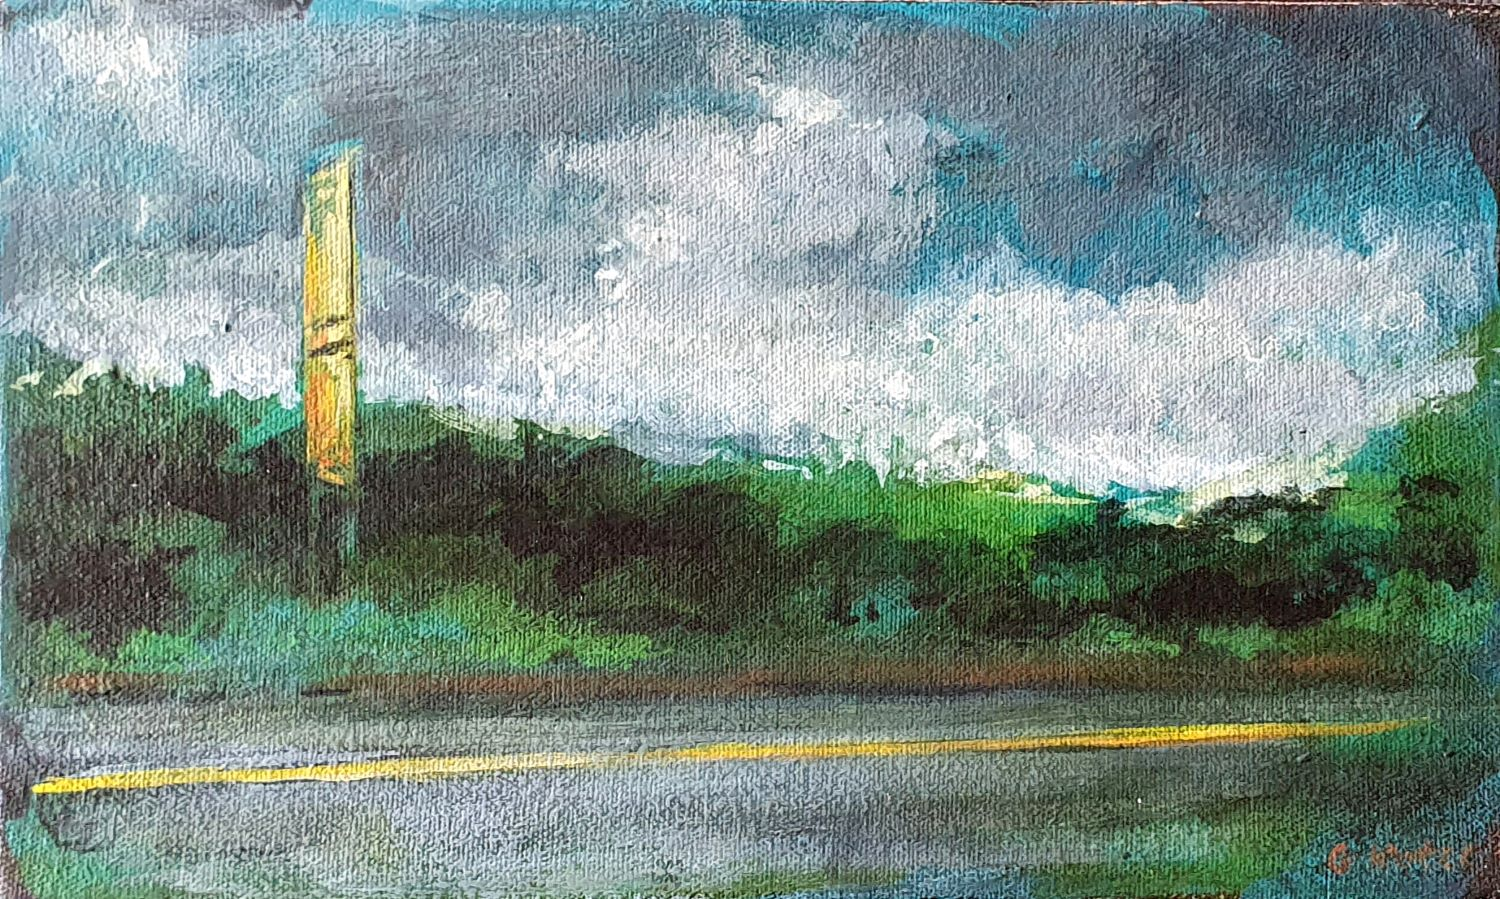 The_still_of_movement_15_x_25_x_4cm_Acrylic_on_canvas